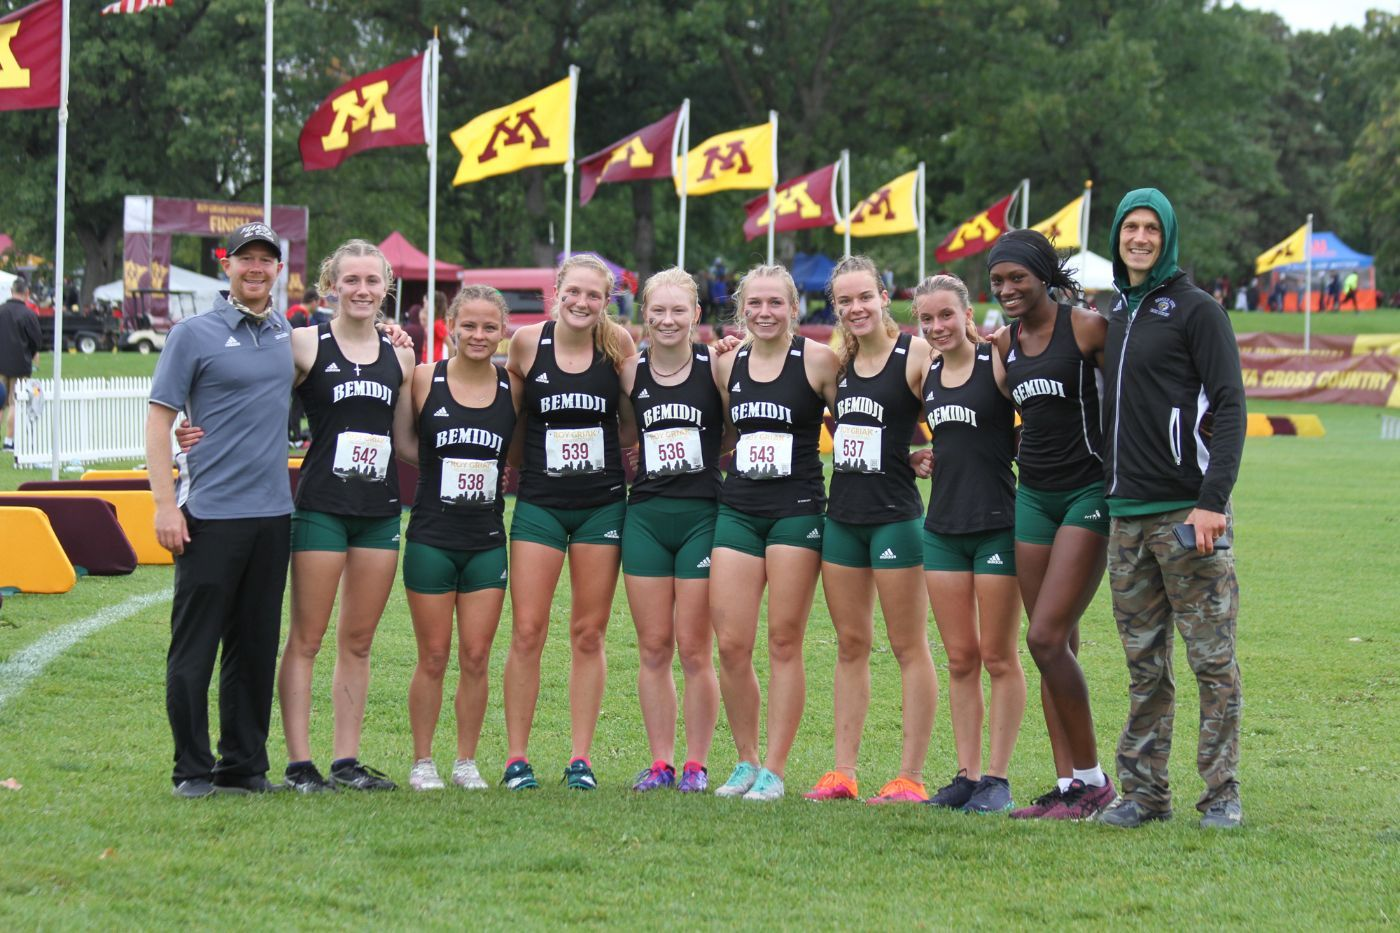 Goodwin, Prigge take top 50 finishes for cross country at Roy Griak Invitational